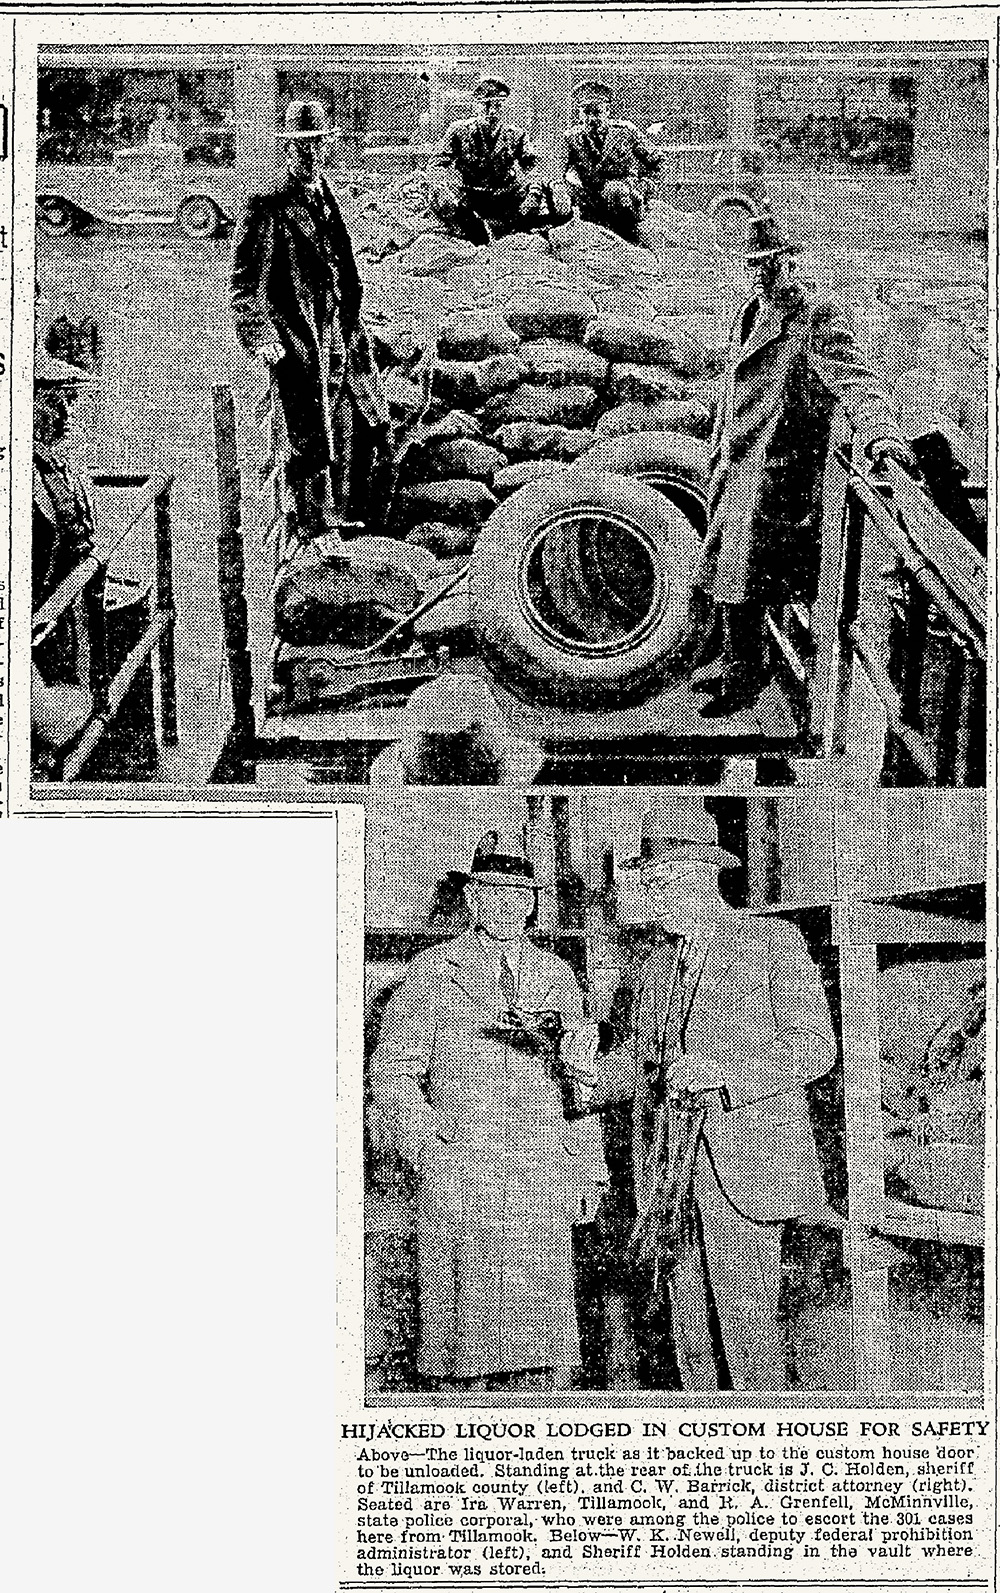 Newspaper clipping with 2 photos. 1 of 4 men standing in the bed of a truck full of packages, 1 of 2 men standing in a storeroom with shelving.